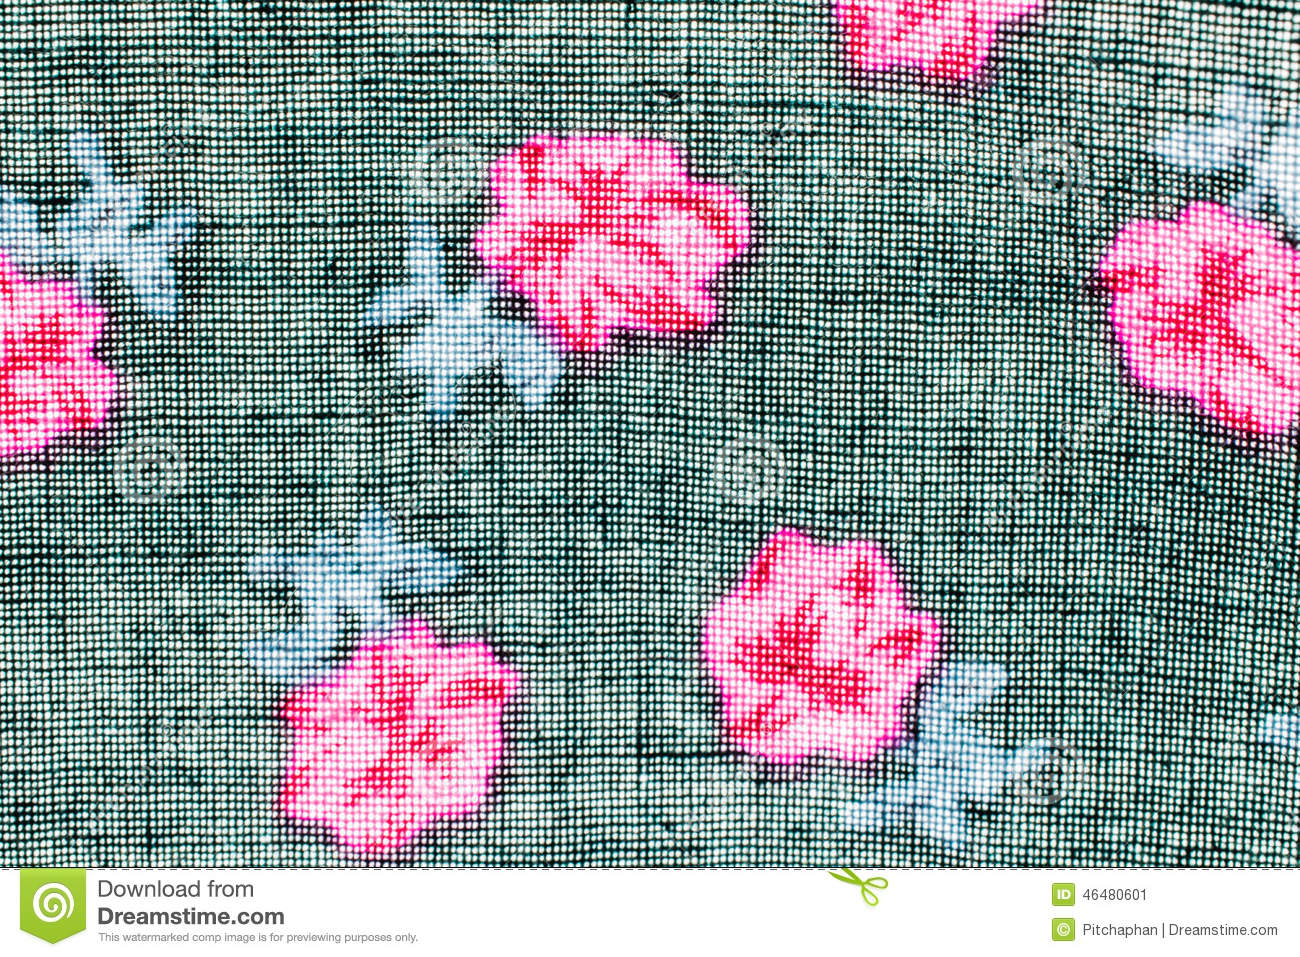 Textureprint And Wale Of Fabric Black And Pink Flowers Pattern